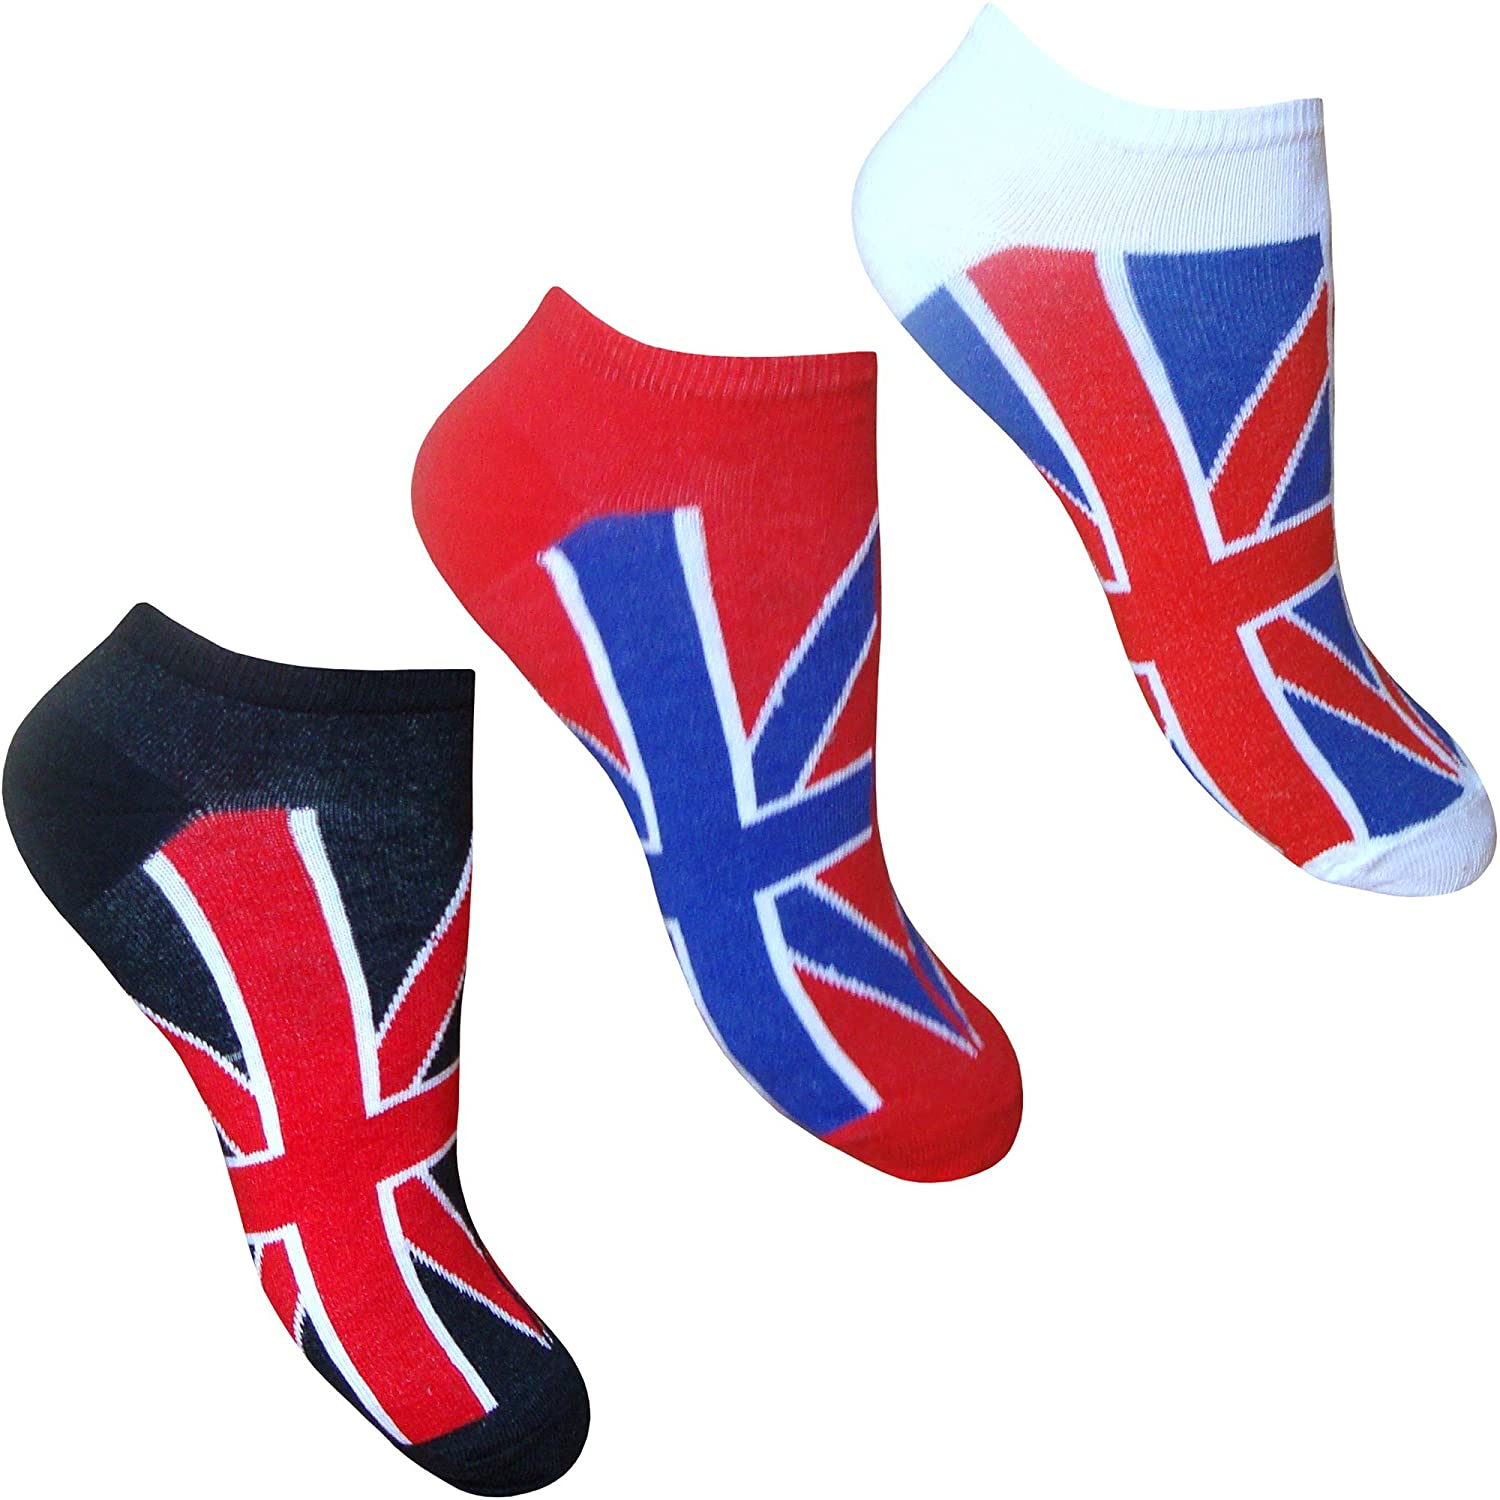 Boys & Girls Unisex Union Jack Flag Great Britain Trainer Socks (3 Pair Multi Pack) KidsGBSocks01